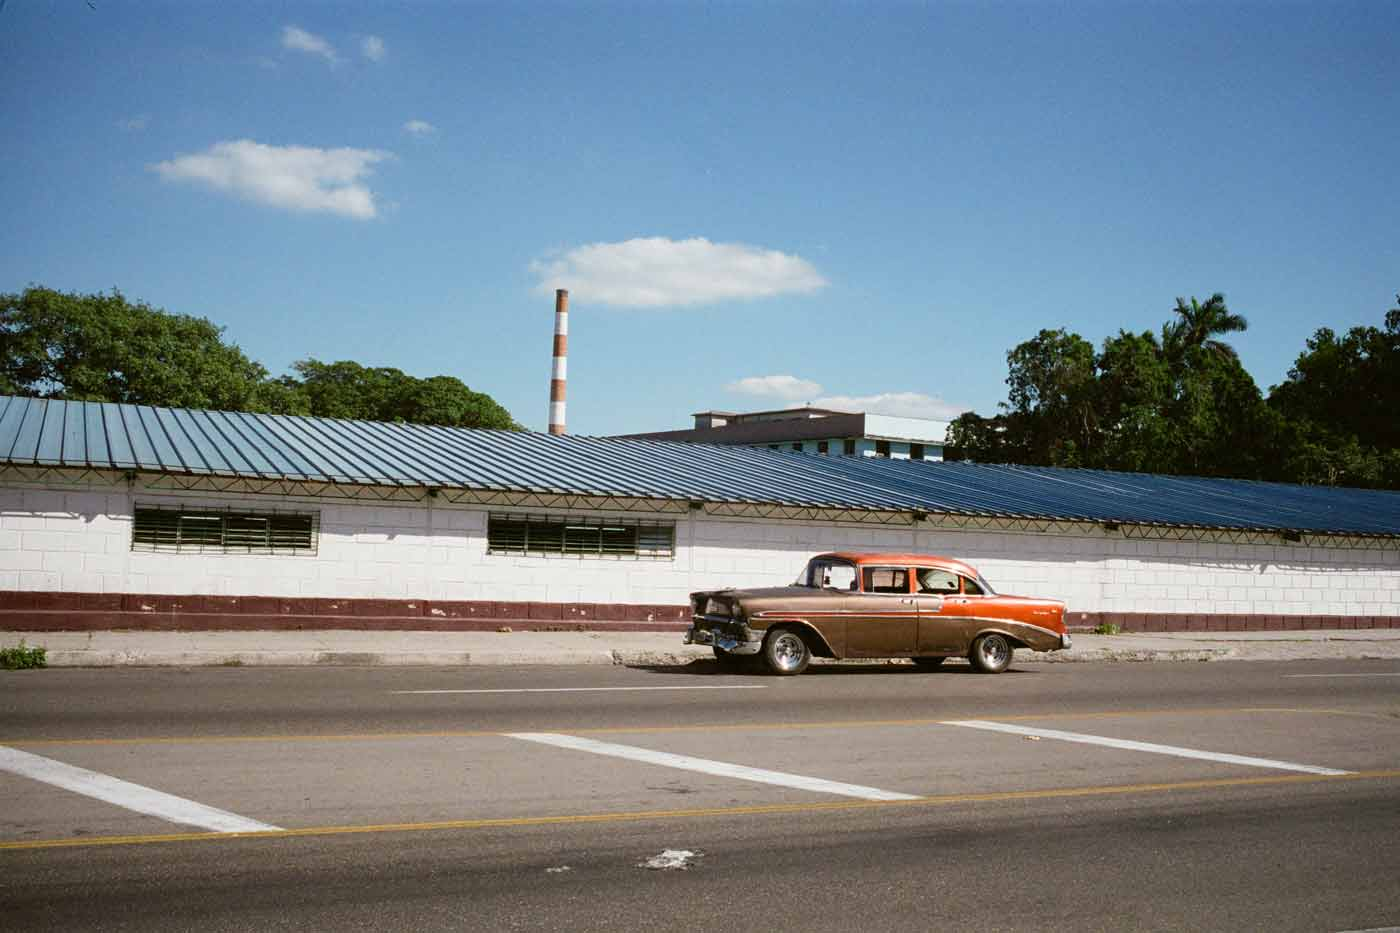 35mm-focal-length-guide-tips-beginner-documentary-story-telling-zone-focus-field-view-perspective-compression-angle-summilux-cuba-havana-film-photography 4